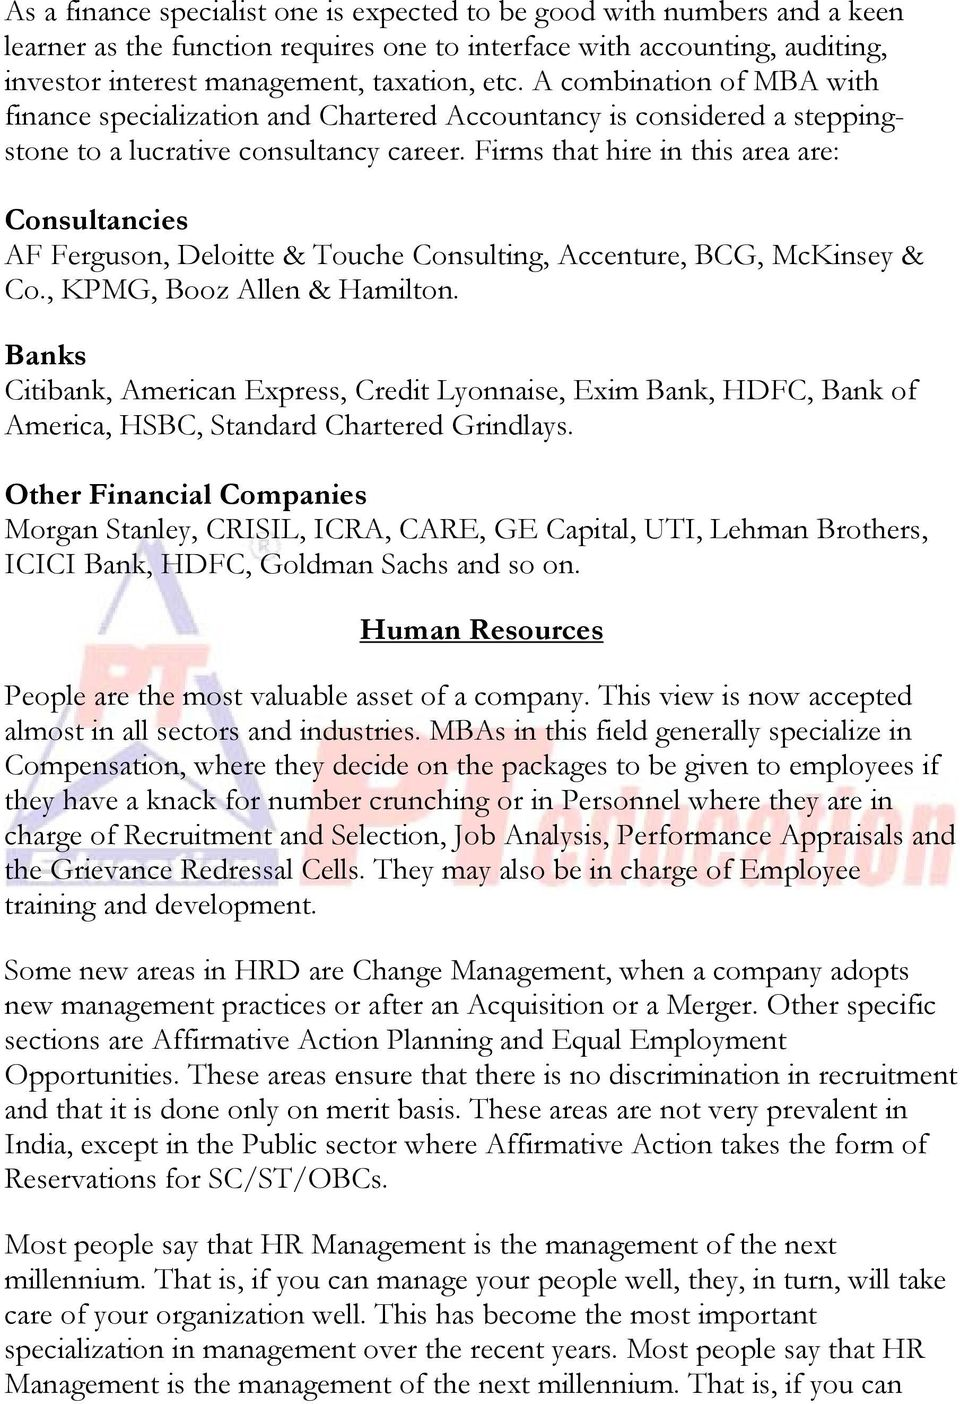 Firms that hire in this area are: Consultancies AF Ferguson, Deloitte & Touche Consulting, Accenture, BCG, McKinsey & Co., KPMG, Booz Allen & Hamilton.